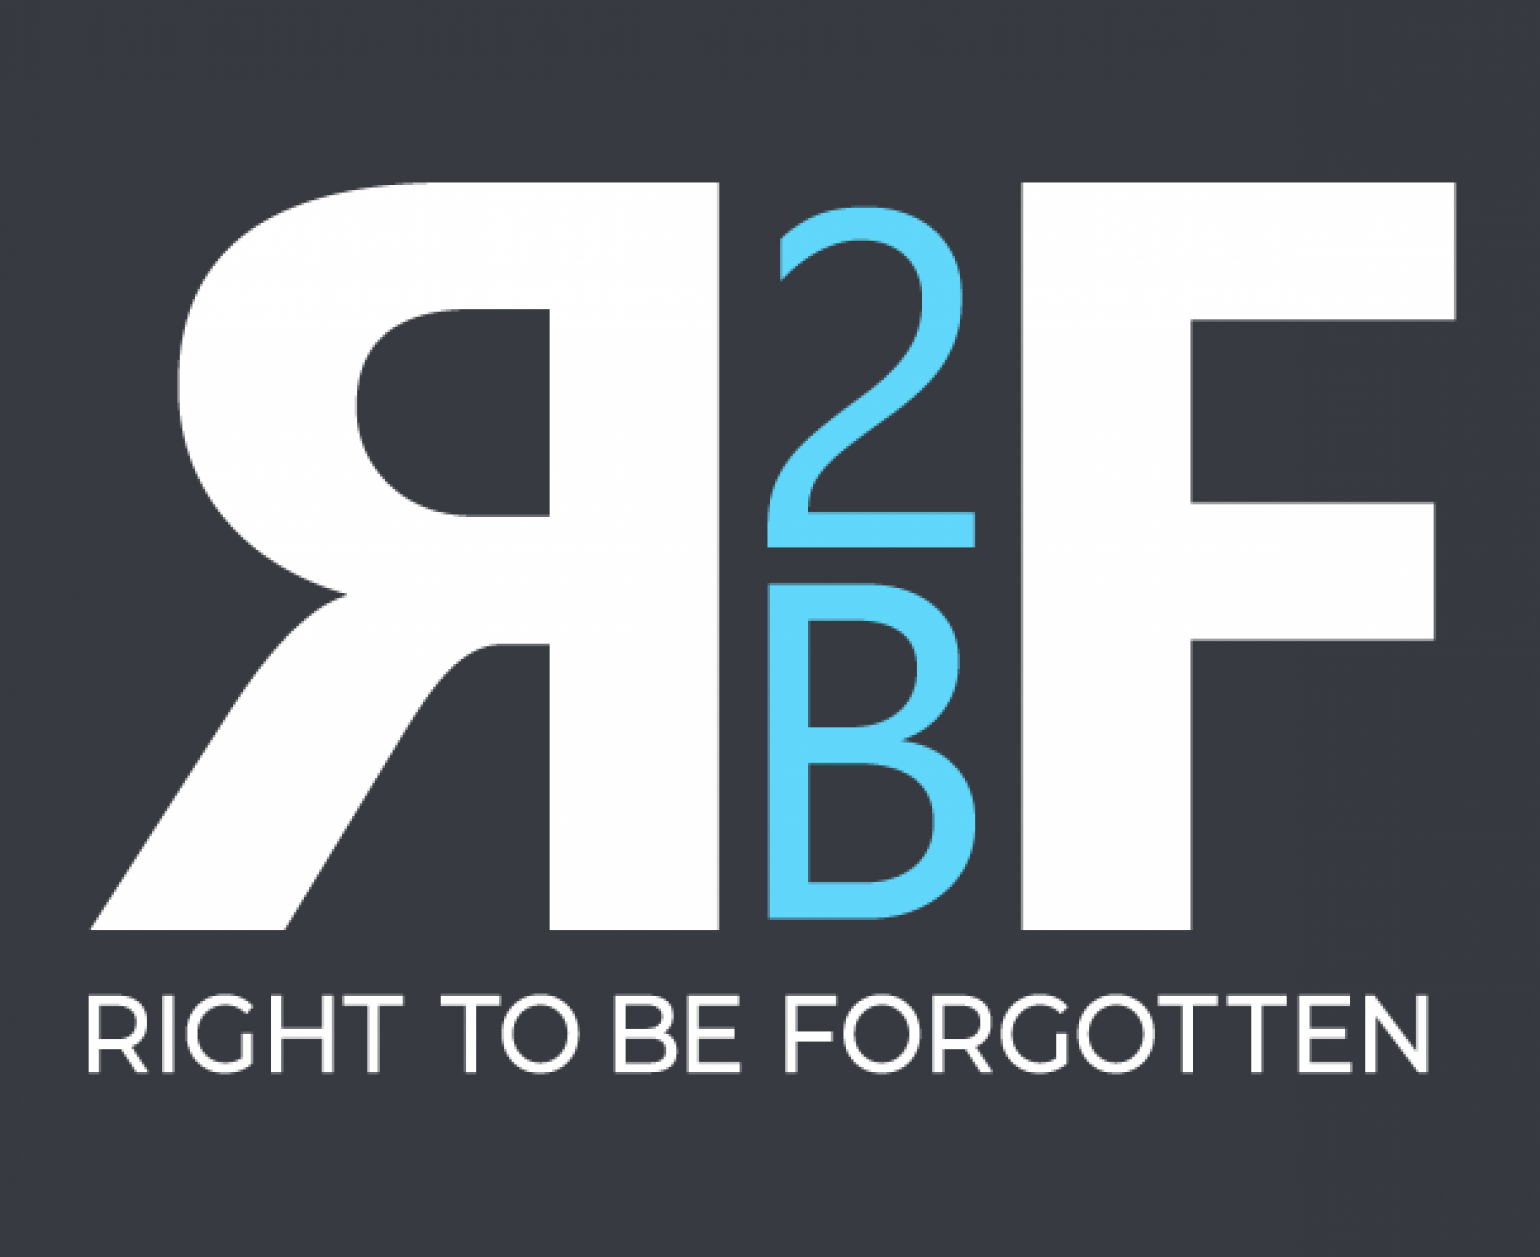 Right to be Forgotten logo